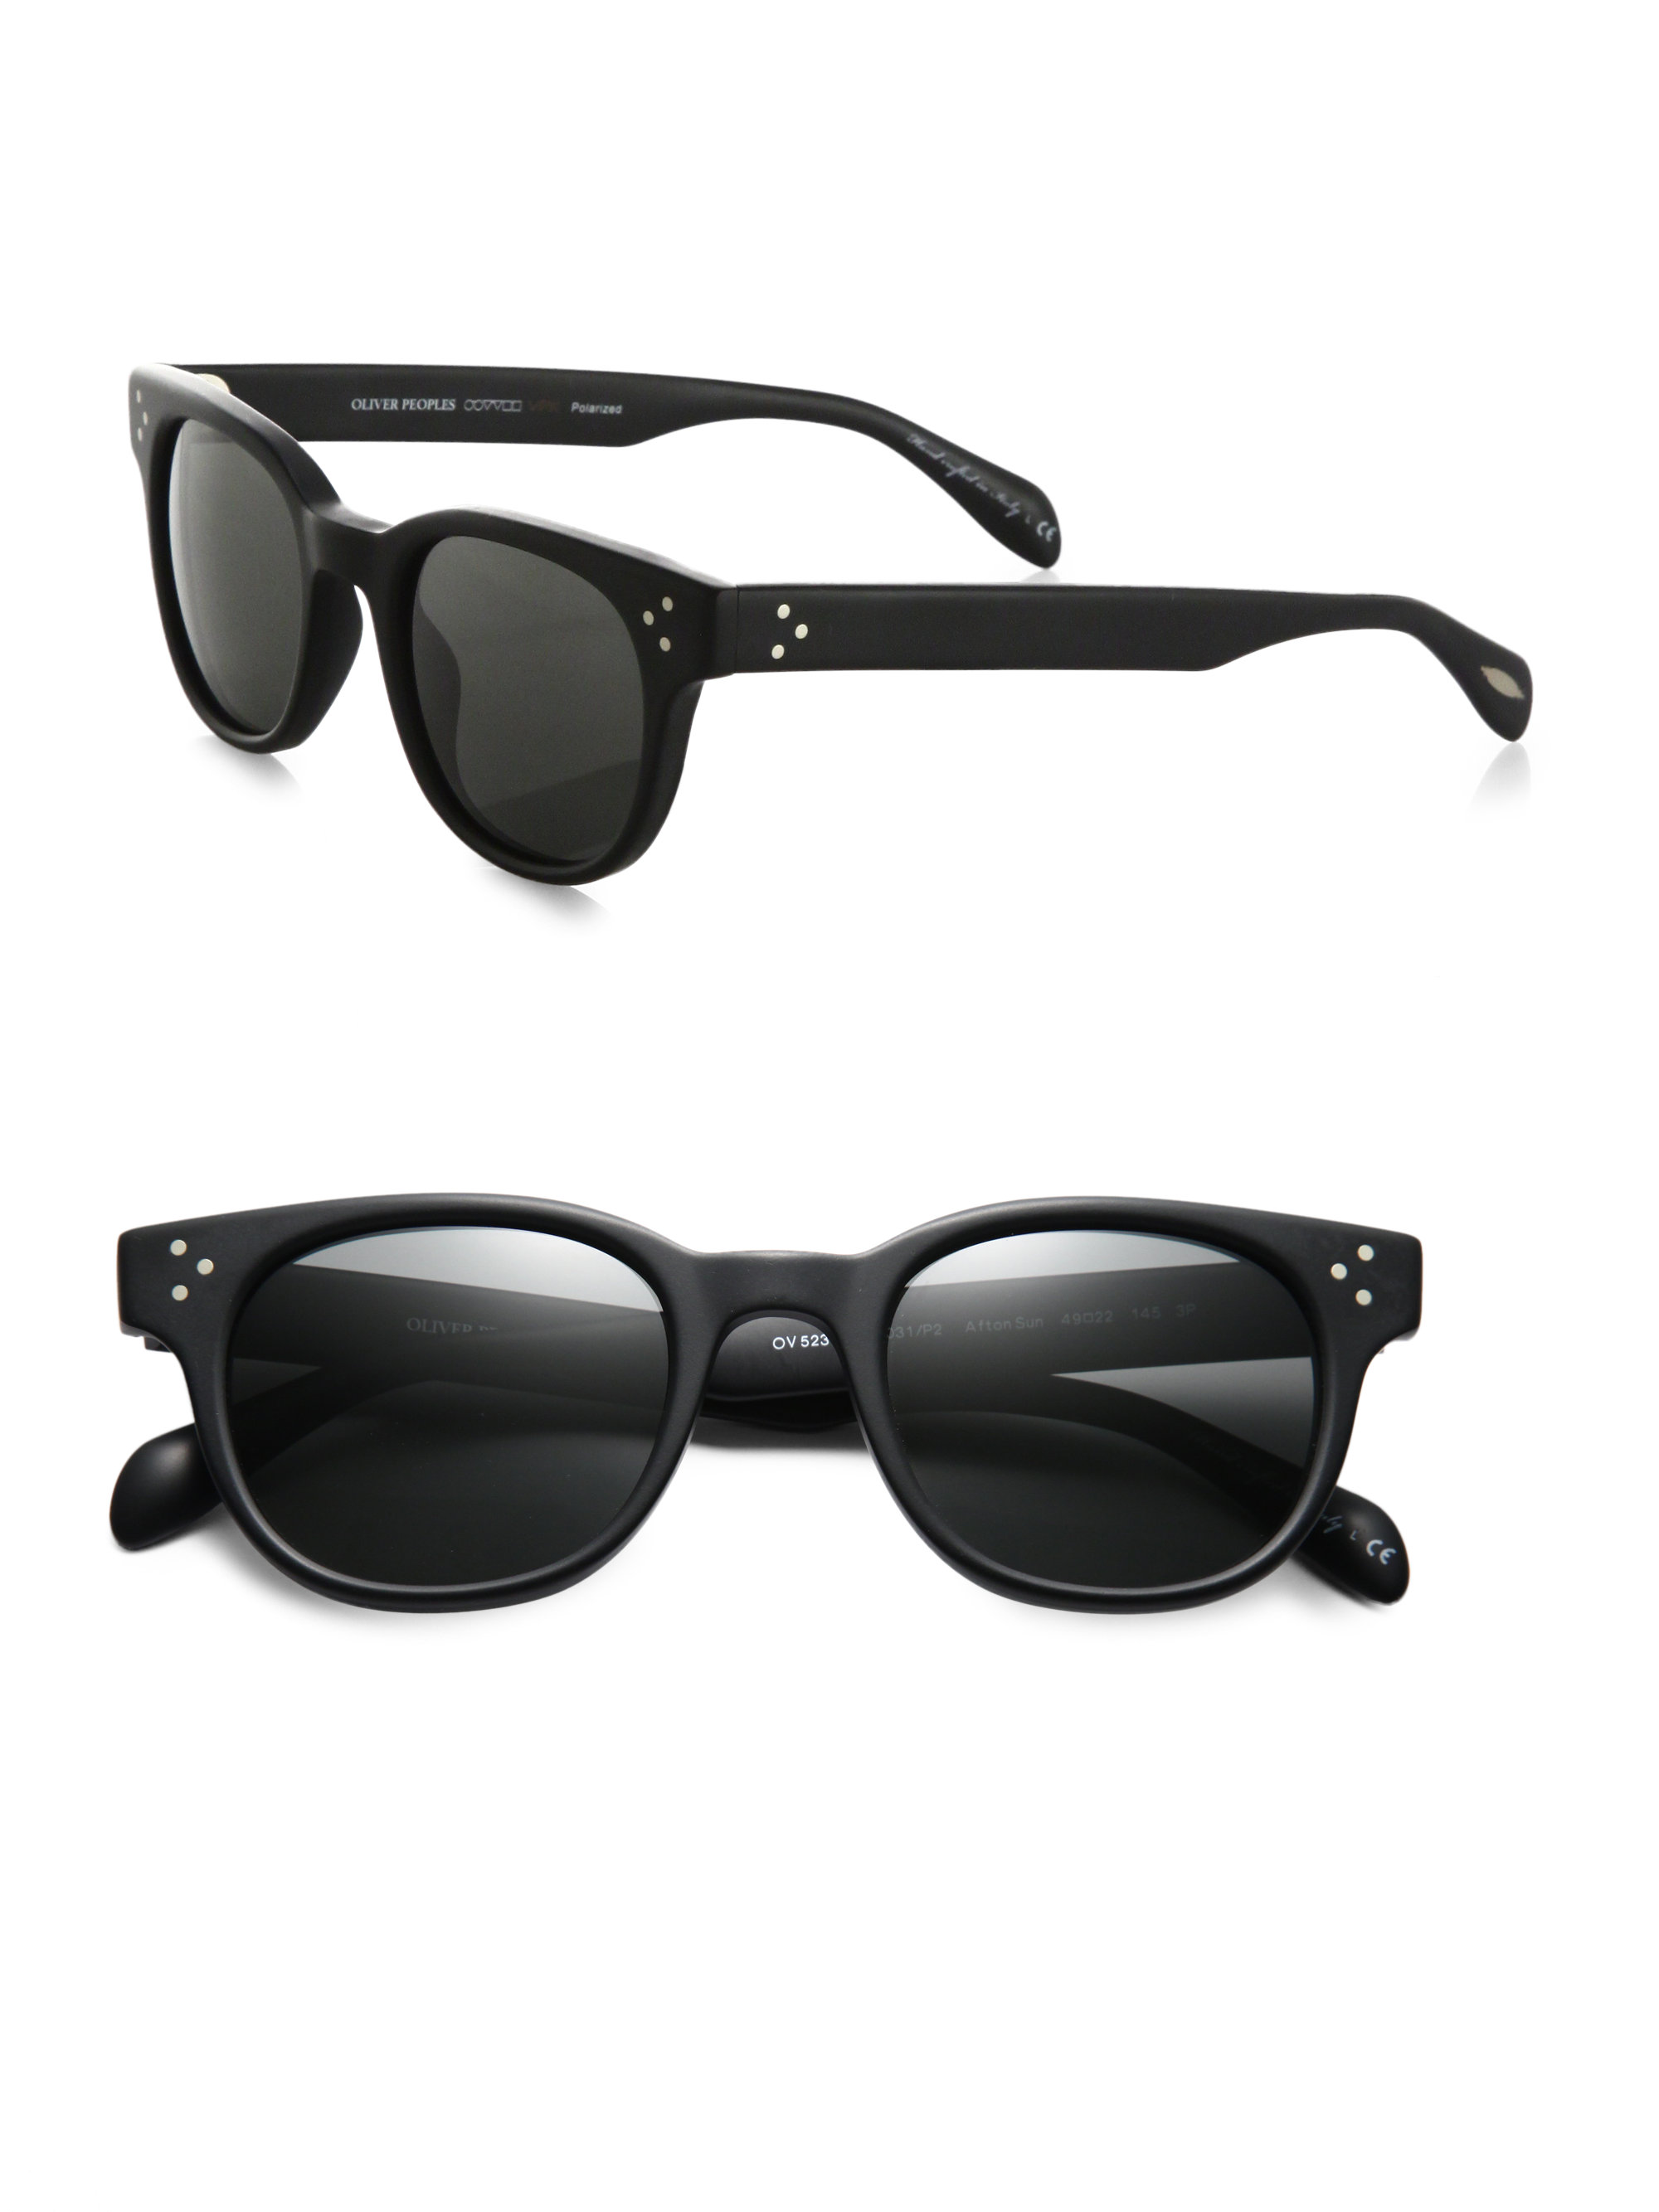 59346cb225 Lyst - Oliver Peoples Afton Round Acetate Sunglasses in Black for Men